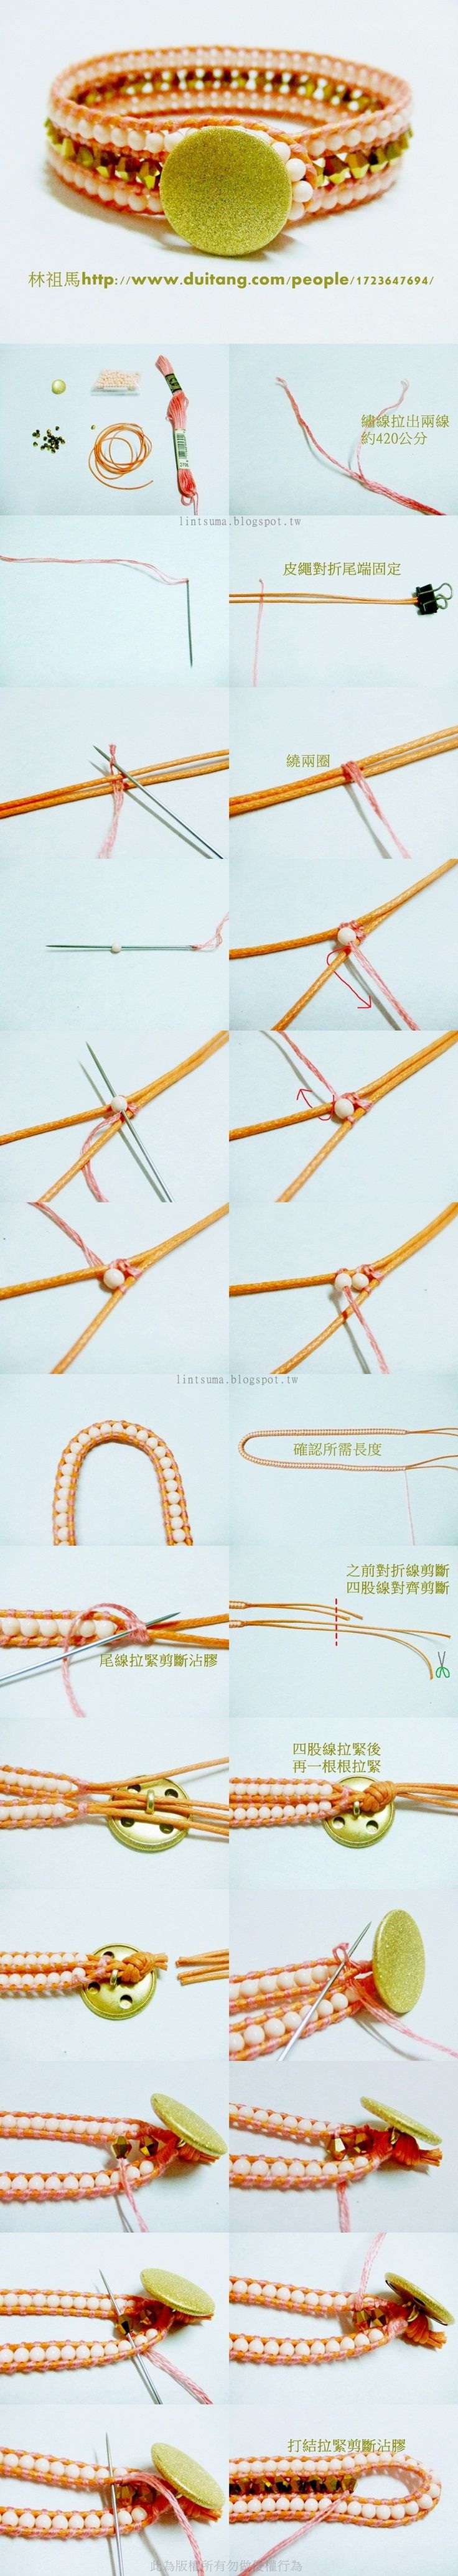 Picture Tutorial Of An Open Ended Beaded Wrap Bracelet (link: Http: